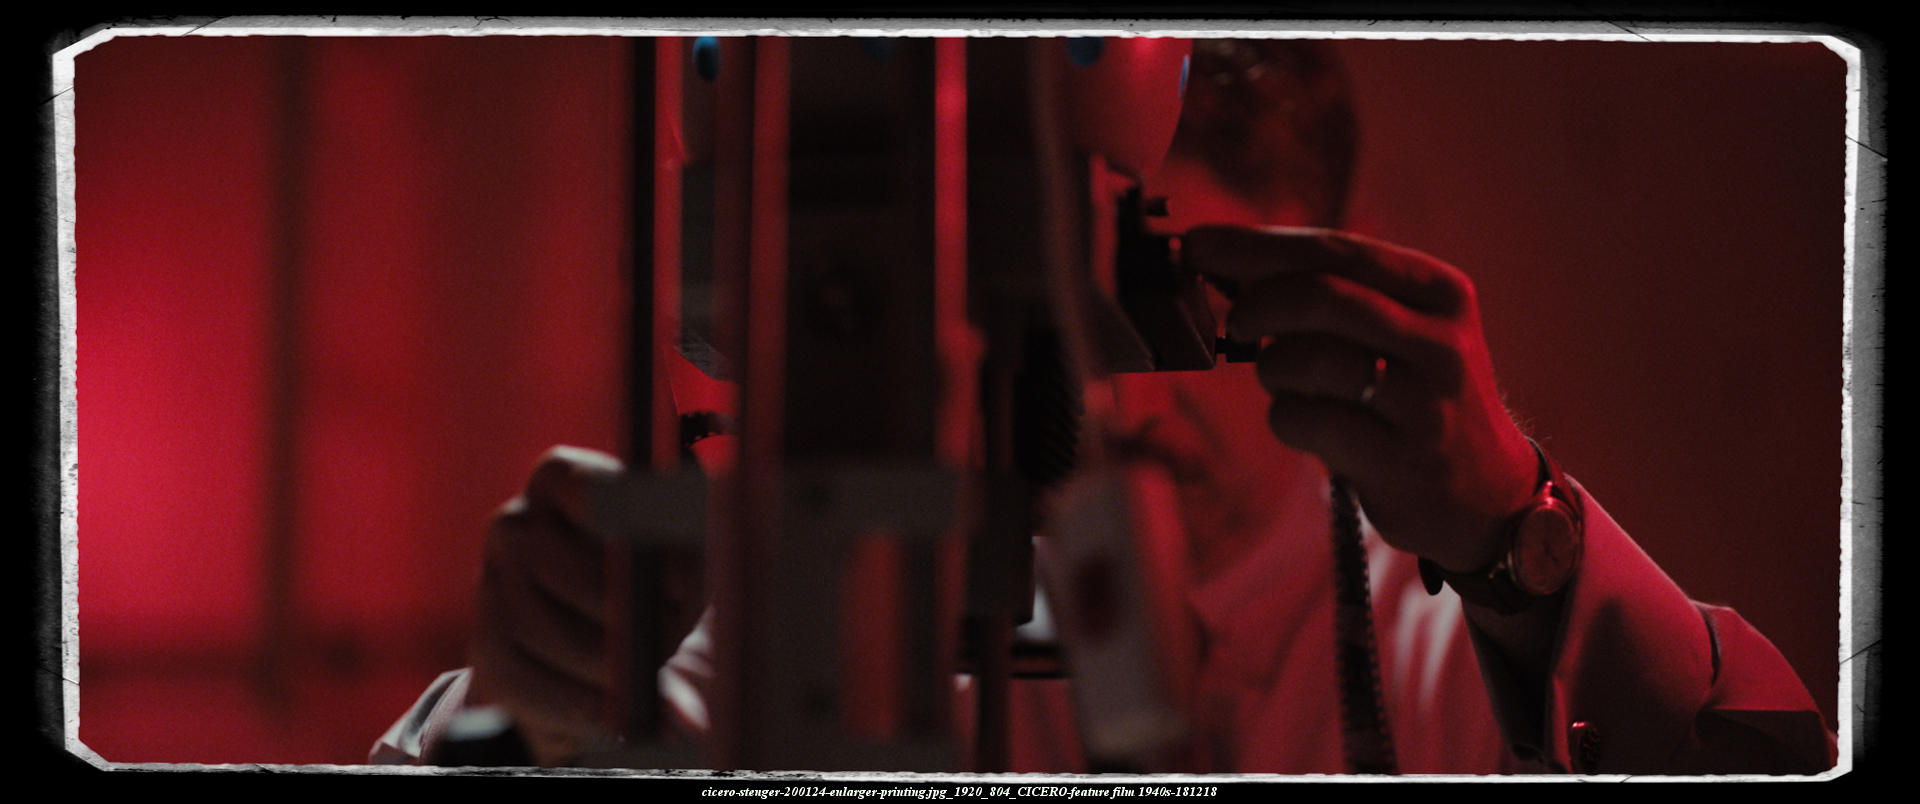 CICERO-the bad guy is printing fotos in his professional laboratory